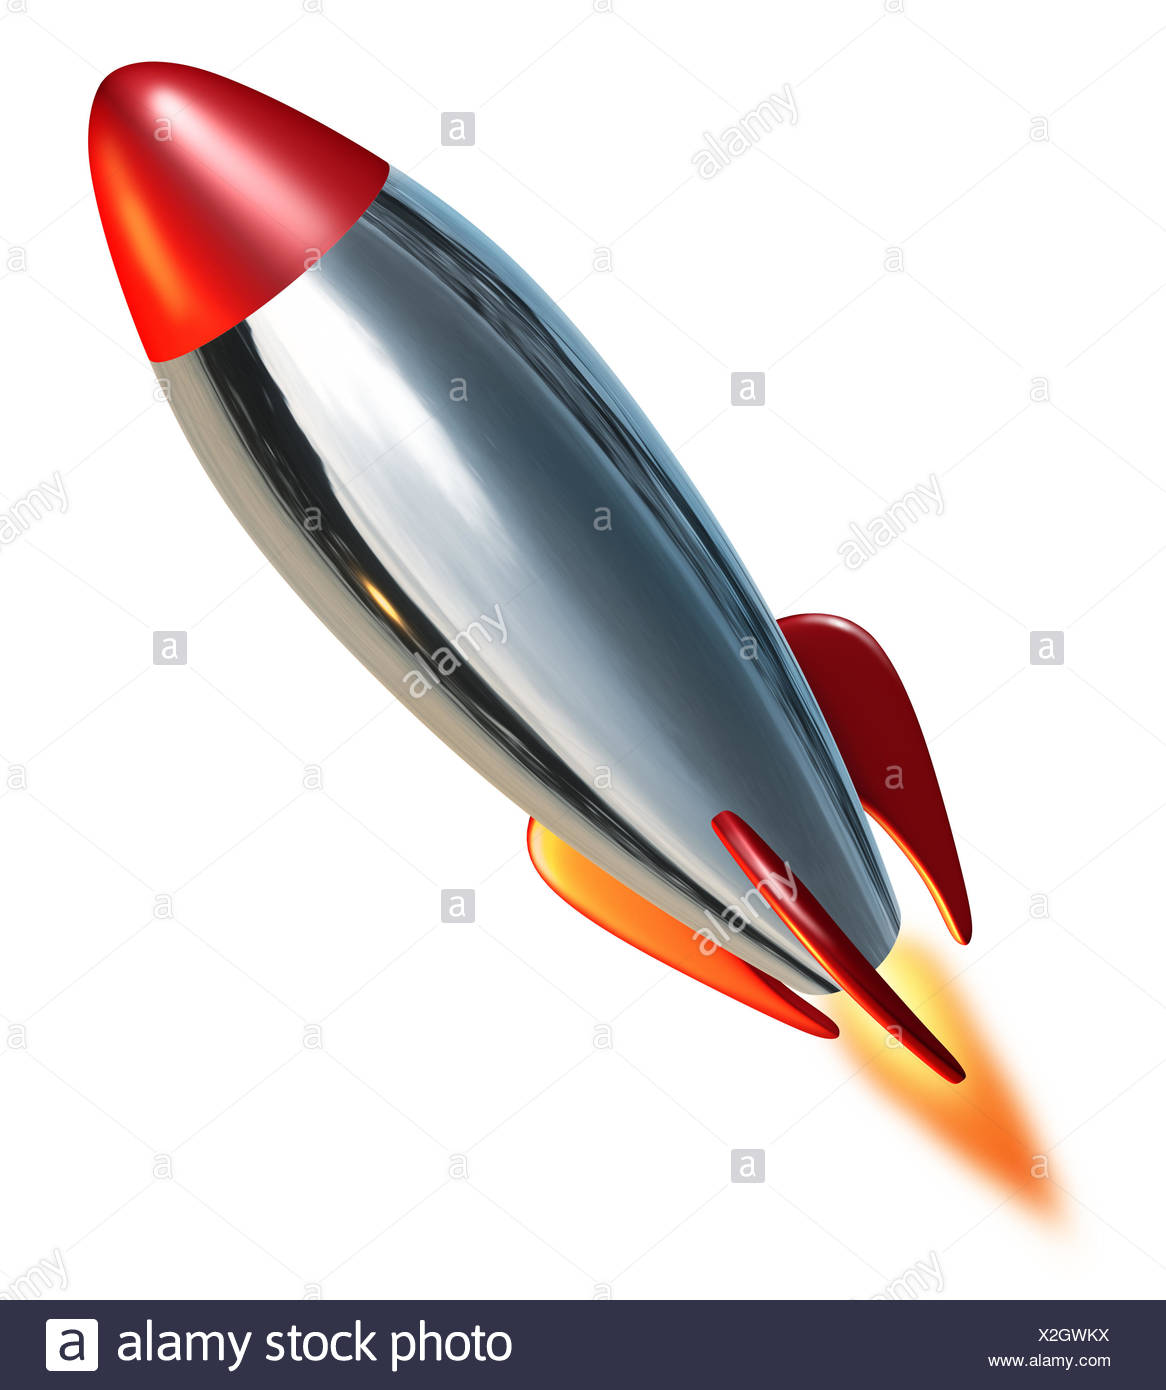 space flight vehicle flame flames upward thrust rocket combustion missile exploration blast off spaceflight rocketry arm weapon - Stock Image